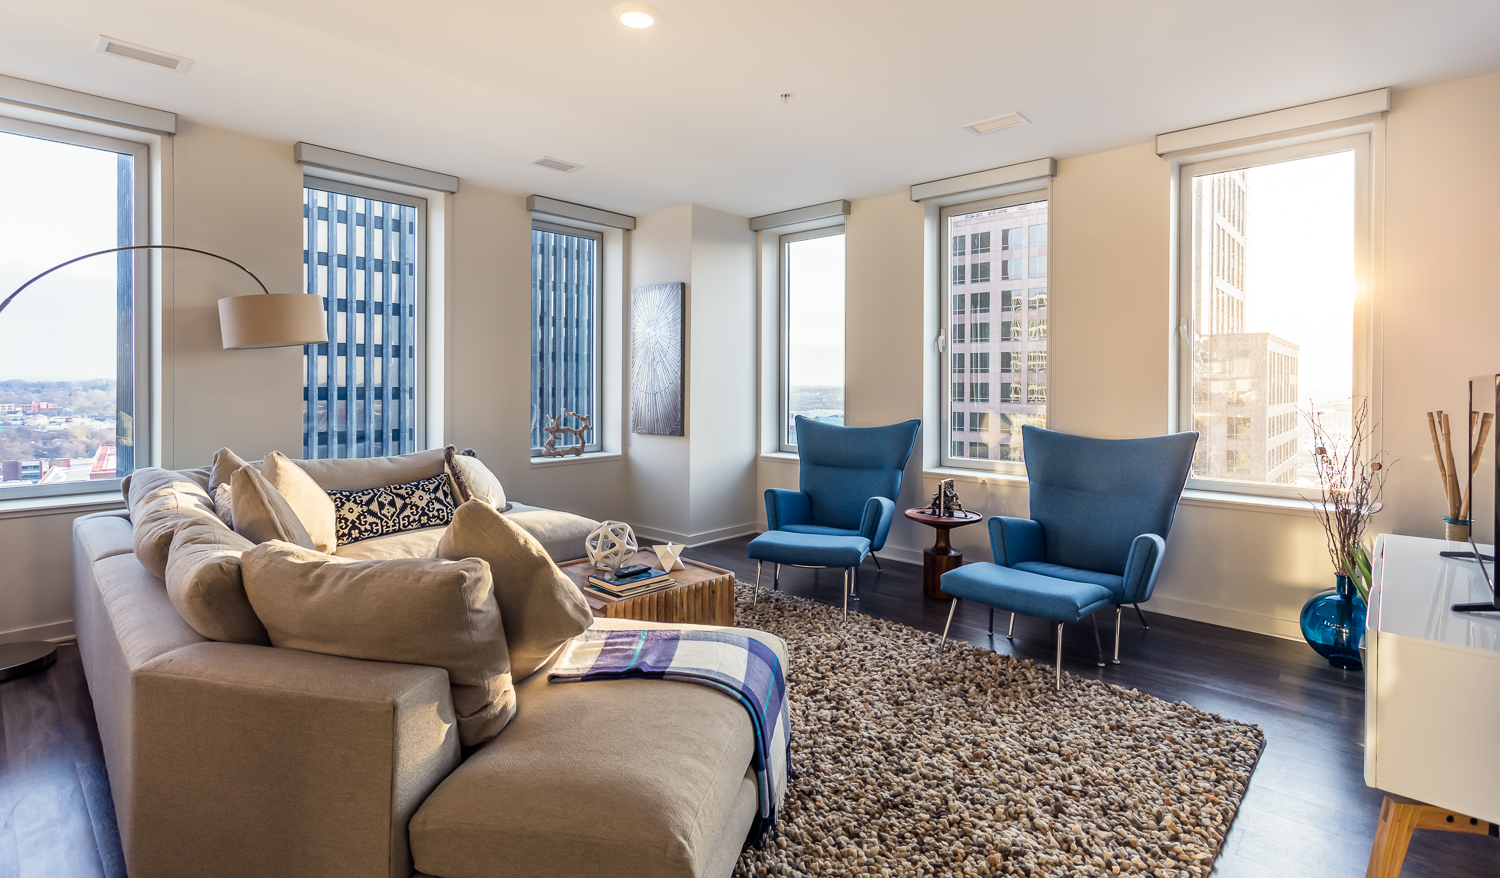 The $3,000 Apartment: What You'll Get in ROC vs  NYC — the